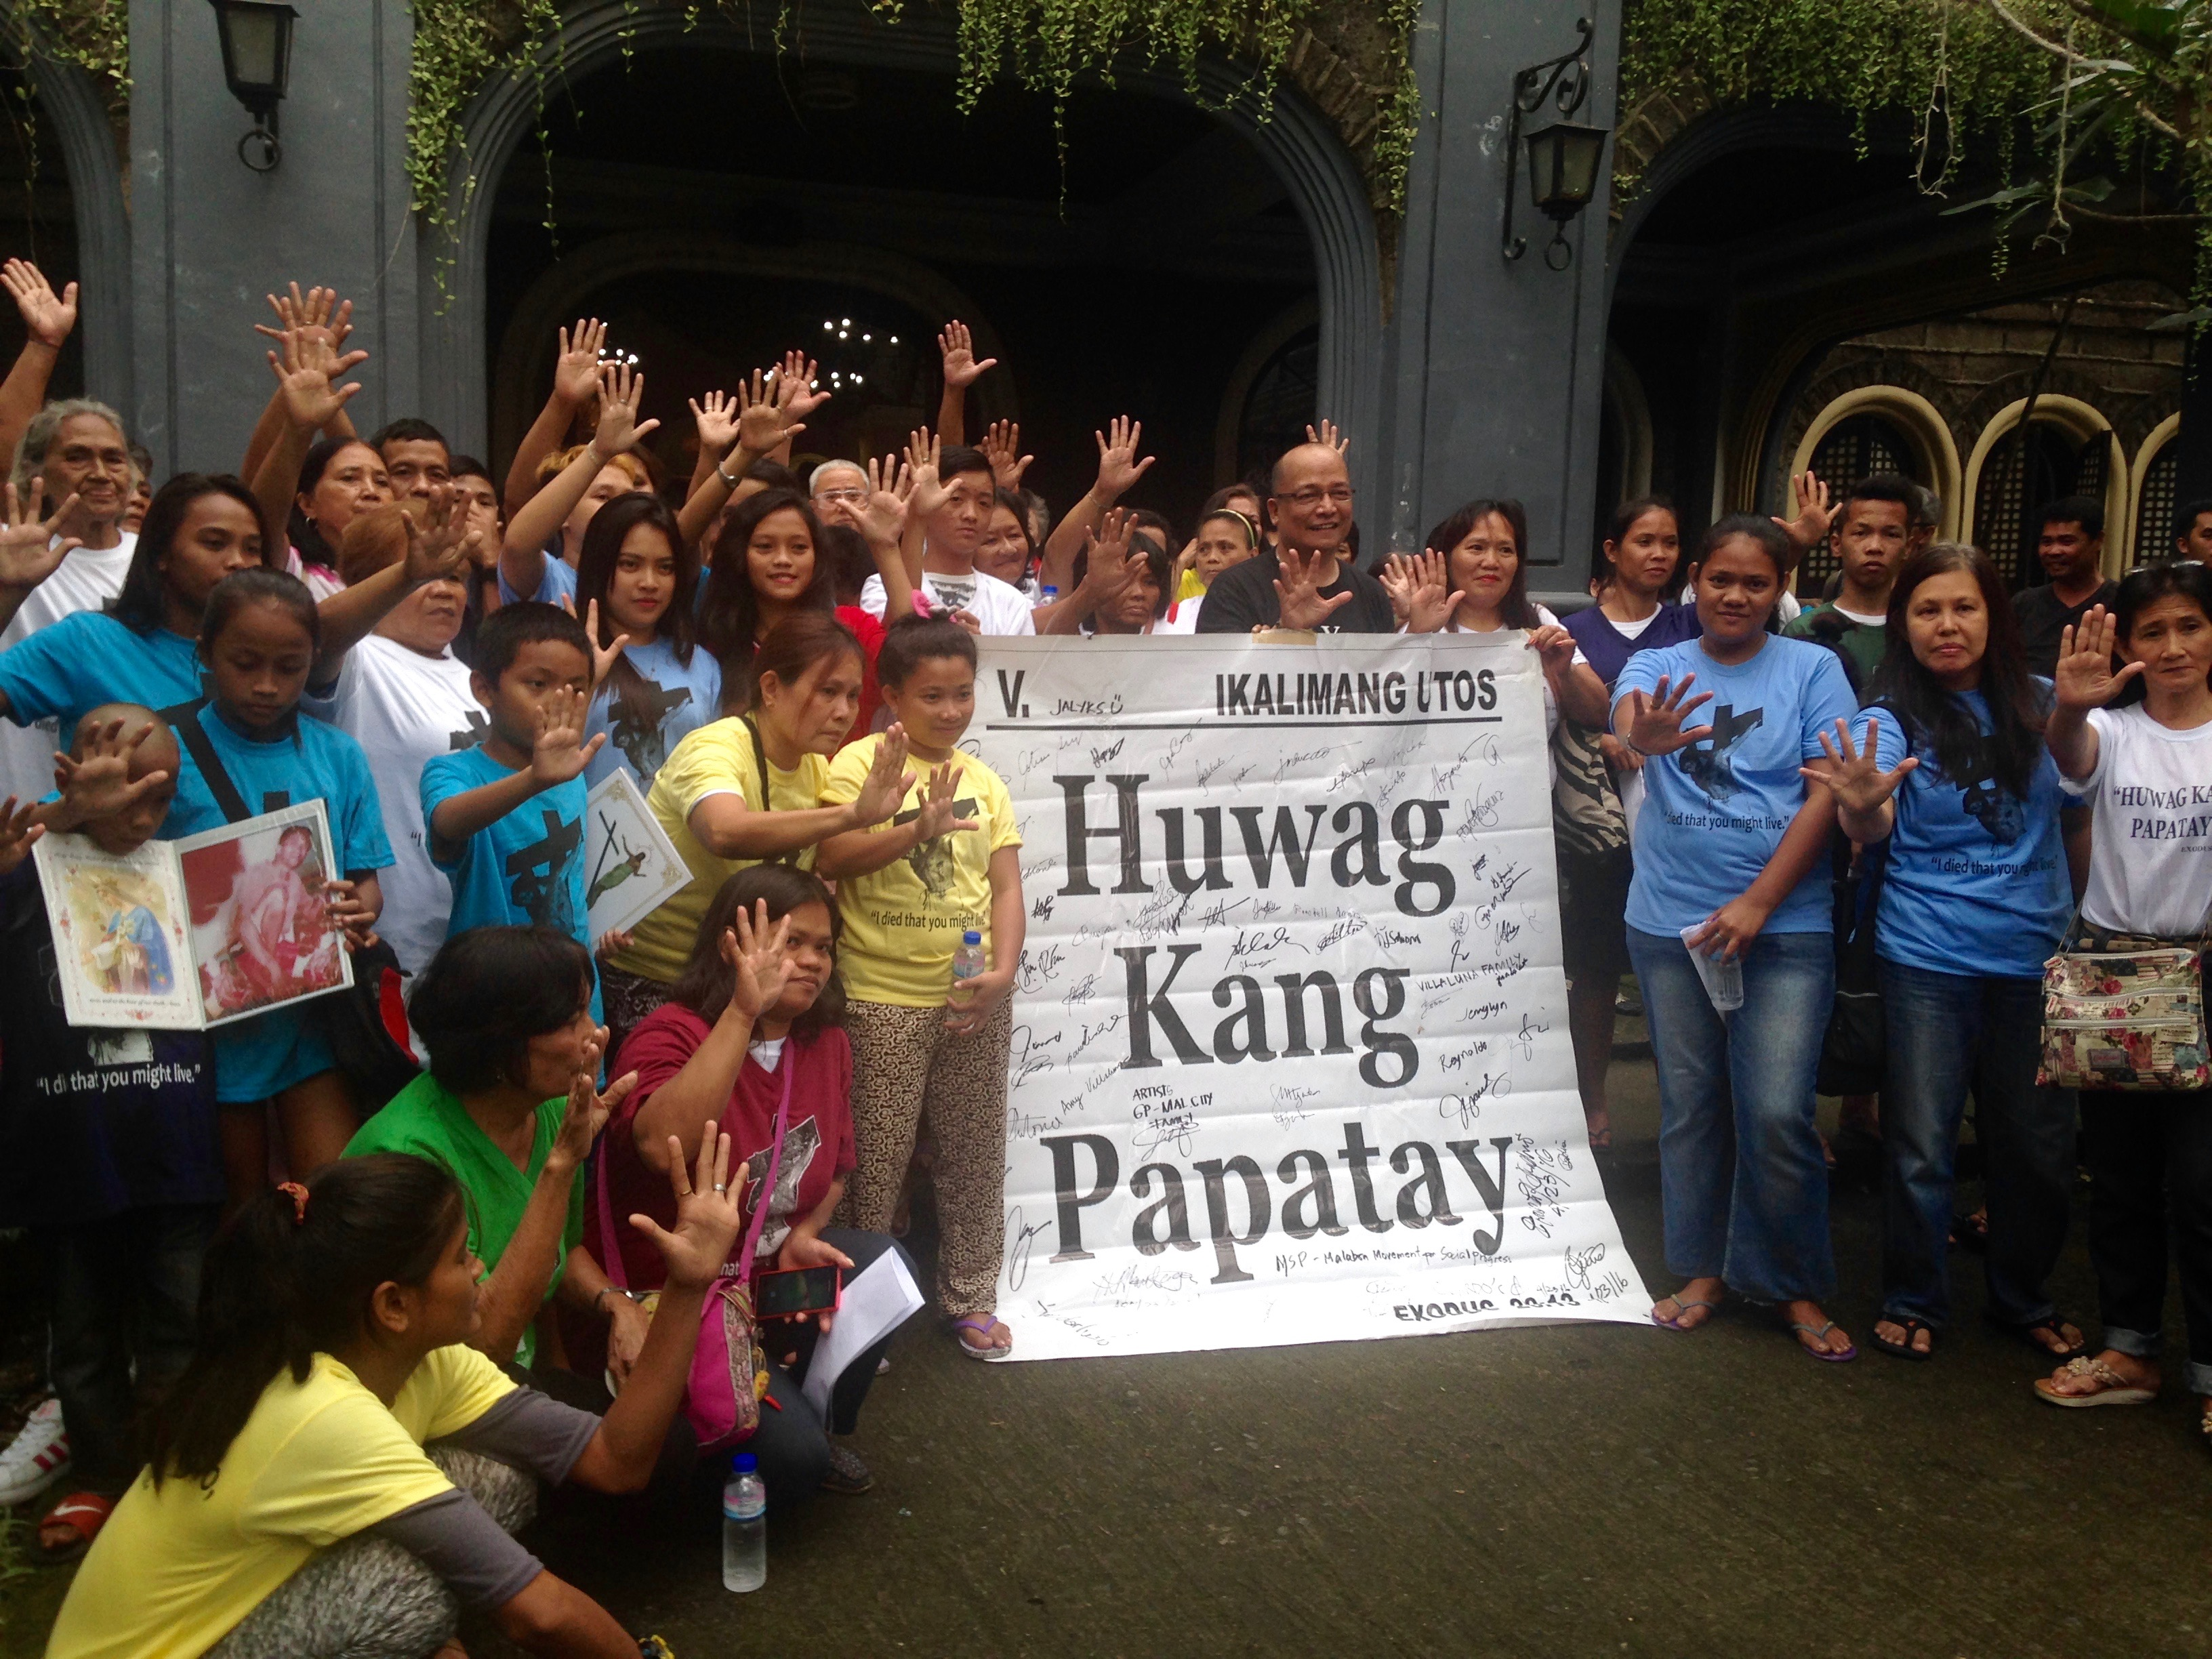 Father Atilano Fajardo of the Archdiocese of Manila launched Huwag Kang Papatay, meaning 'thou shalt not kill,' last July, seven months before the Catholic Church released its official statement condemning the drug war.